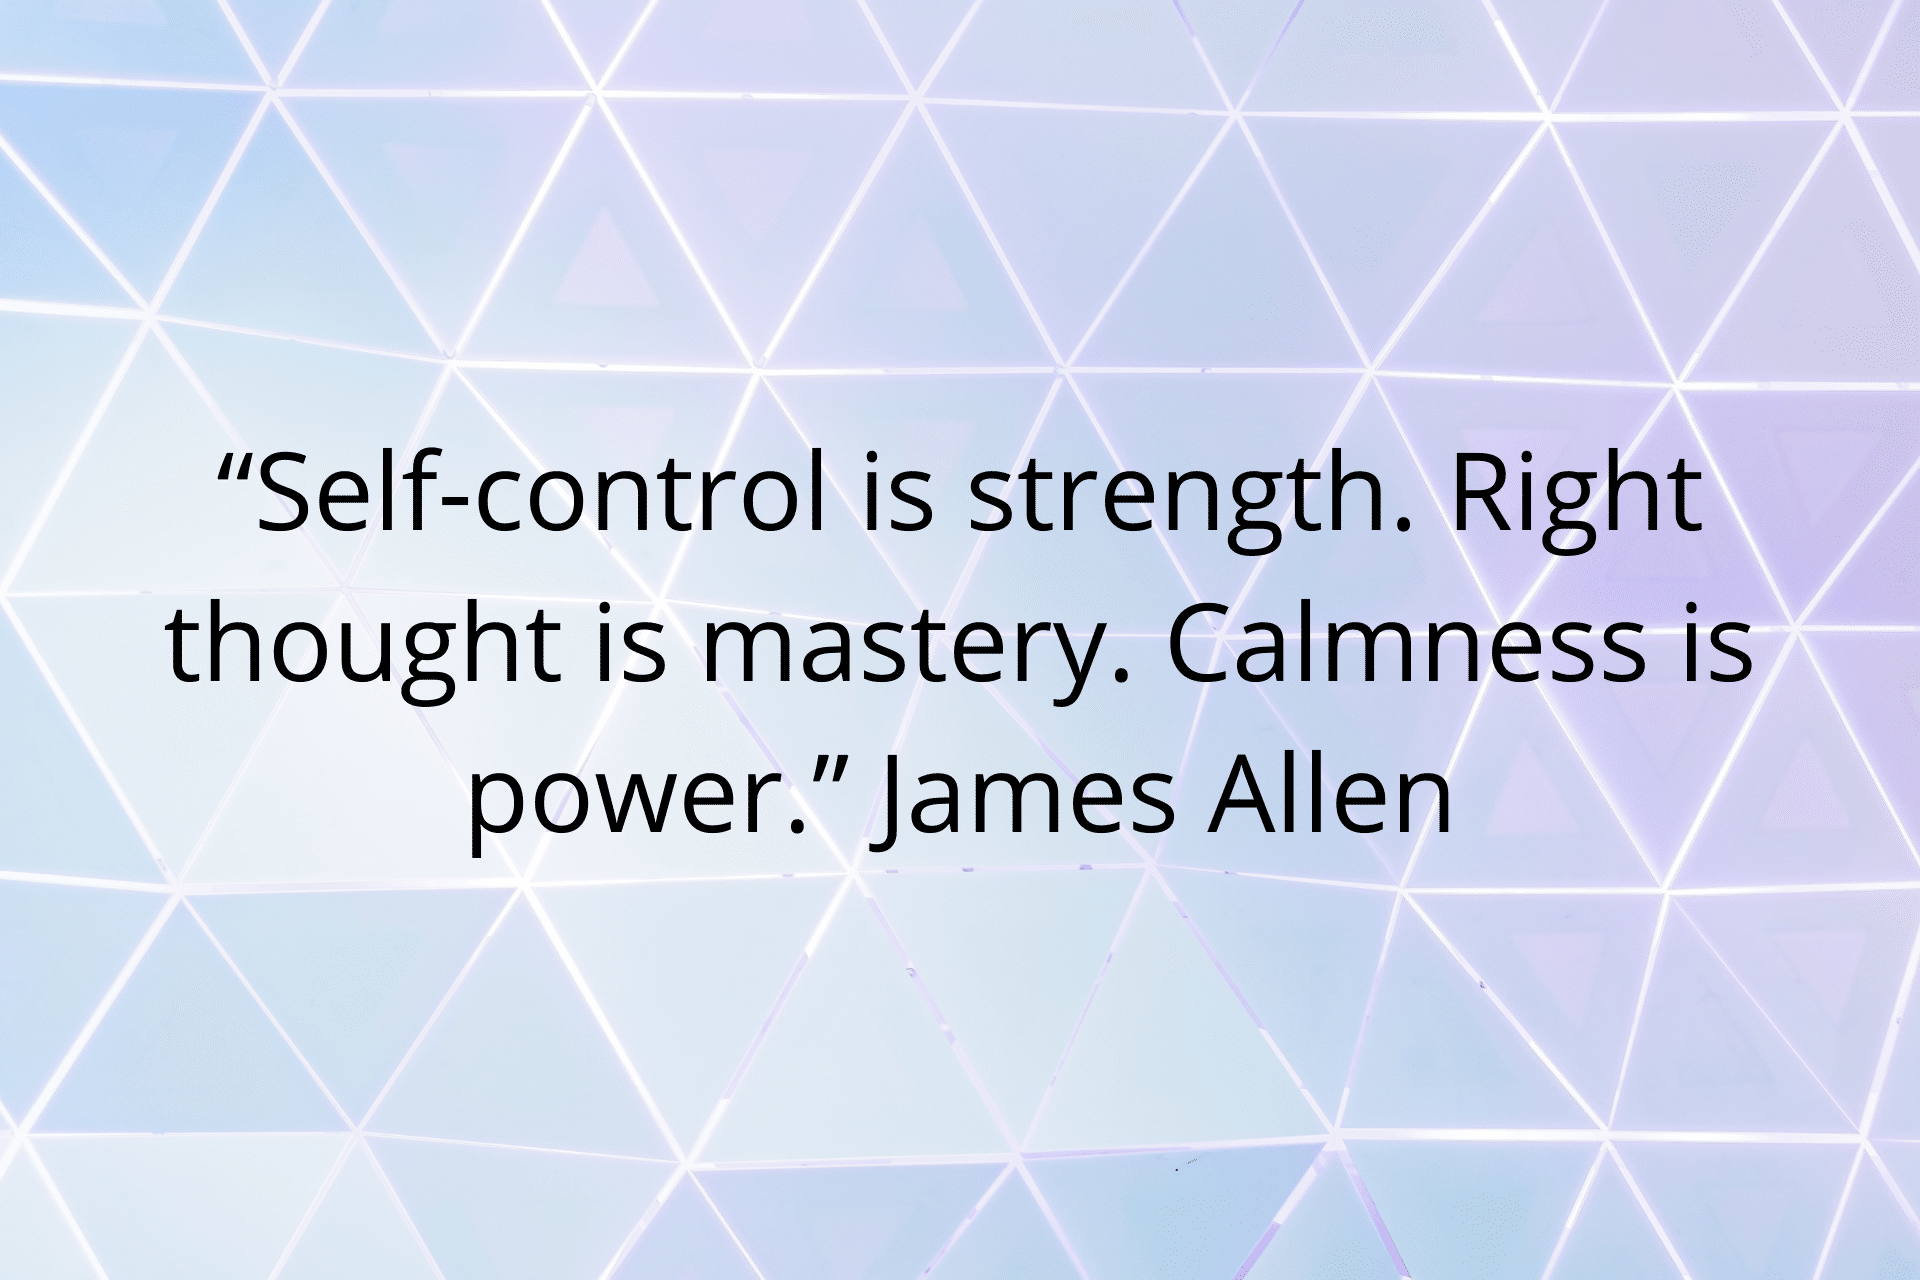 image with blue and purple white background that has a self control quote on it